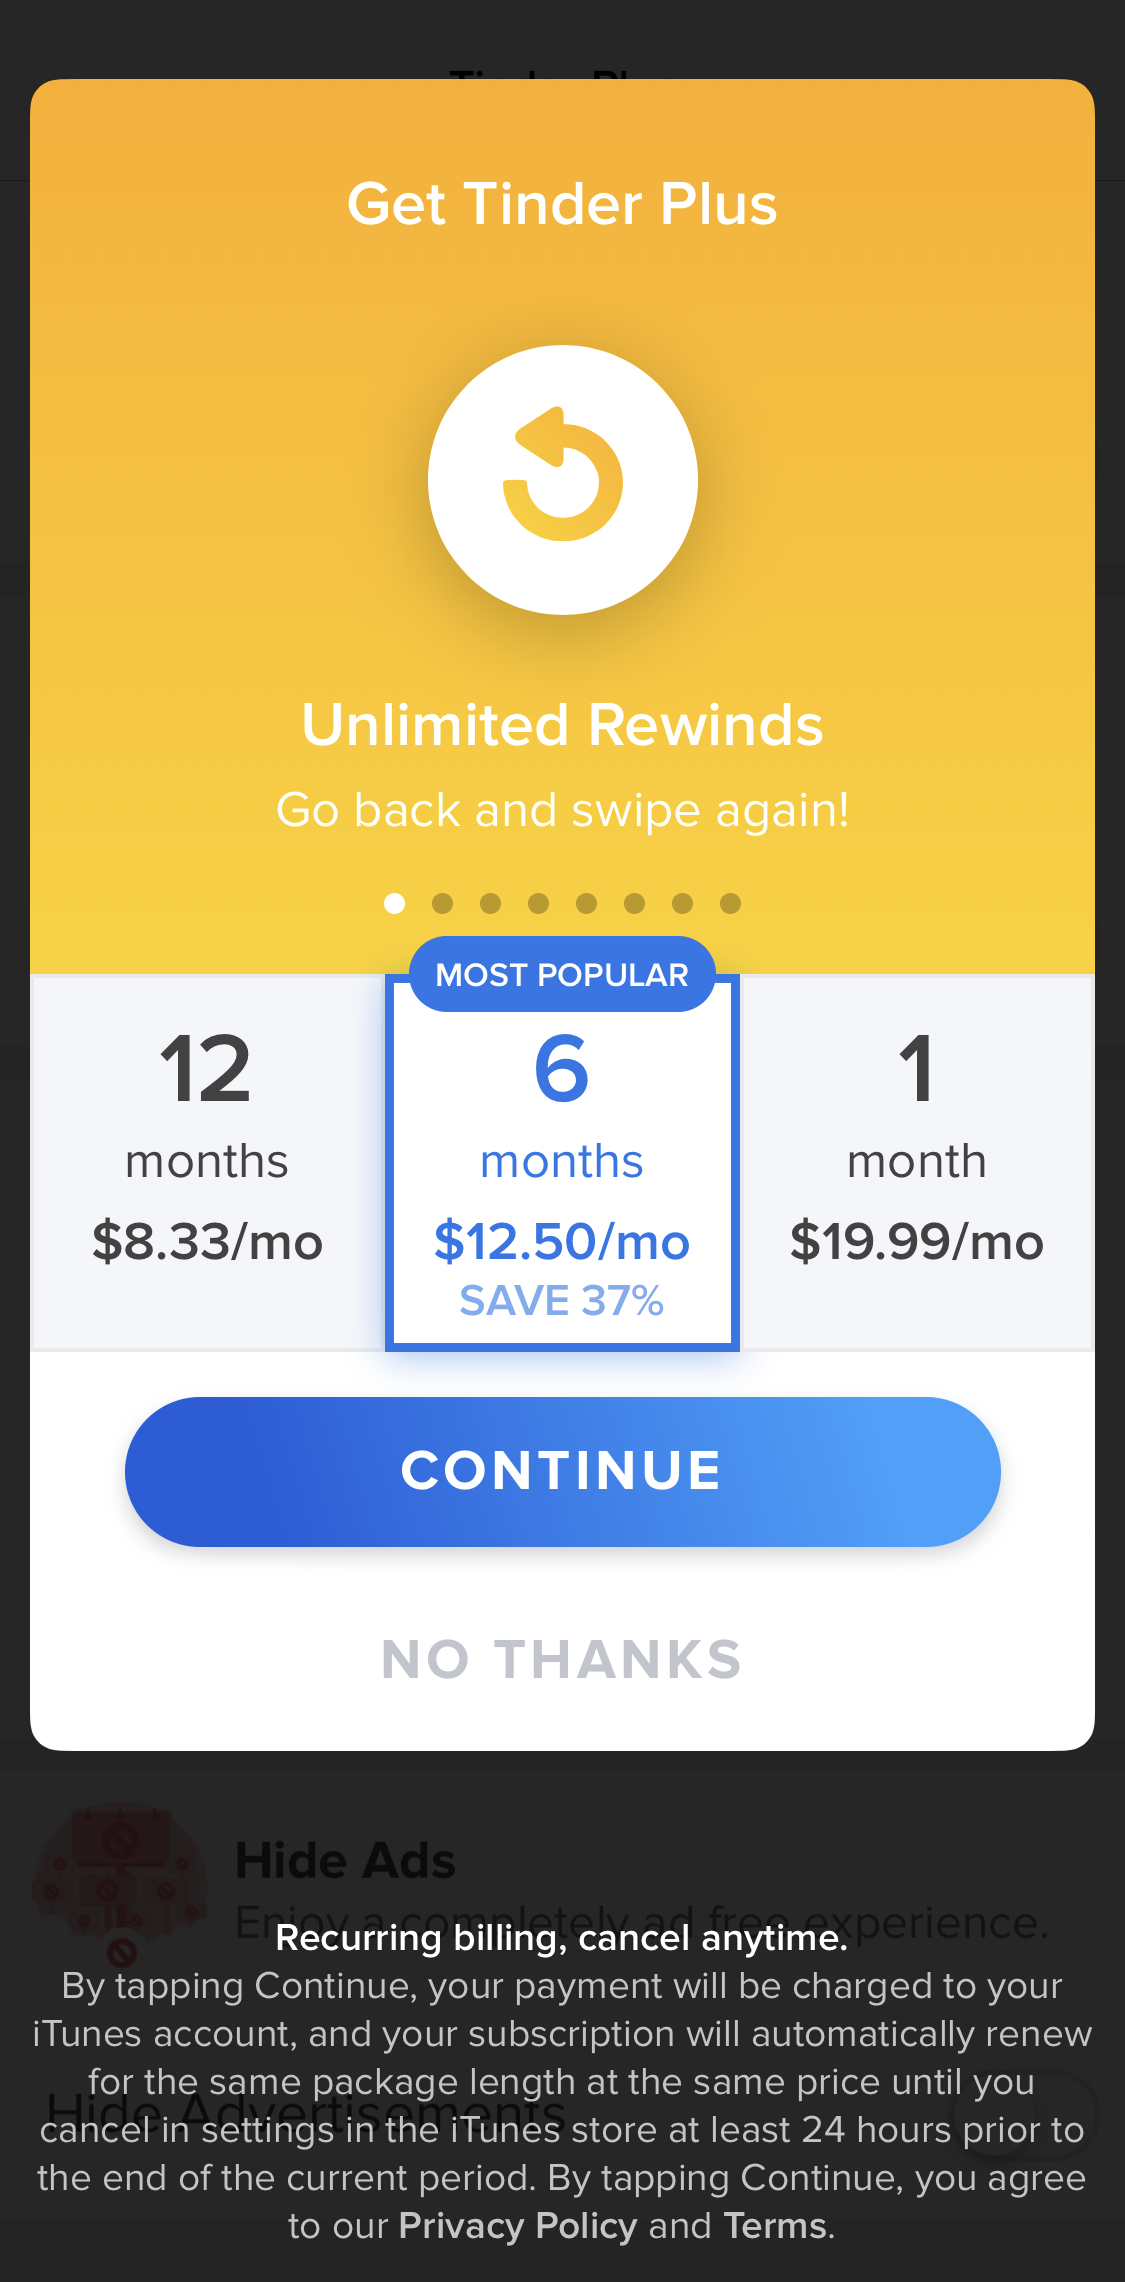 Psst, Keep Checking Those App Subscription Prices